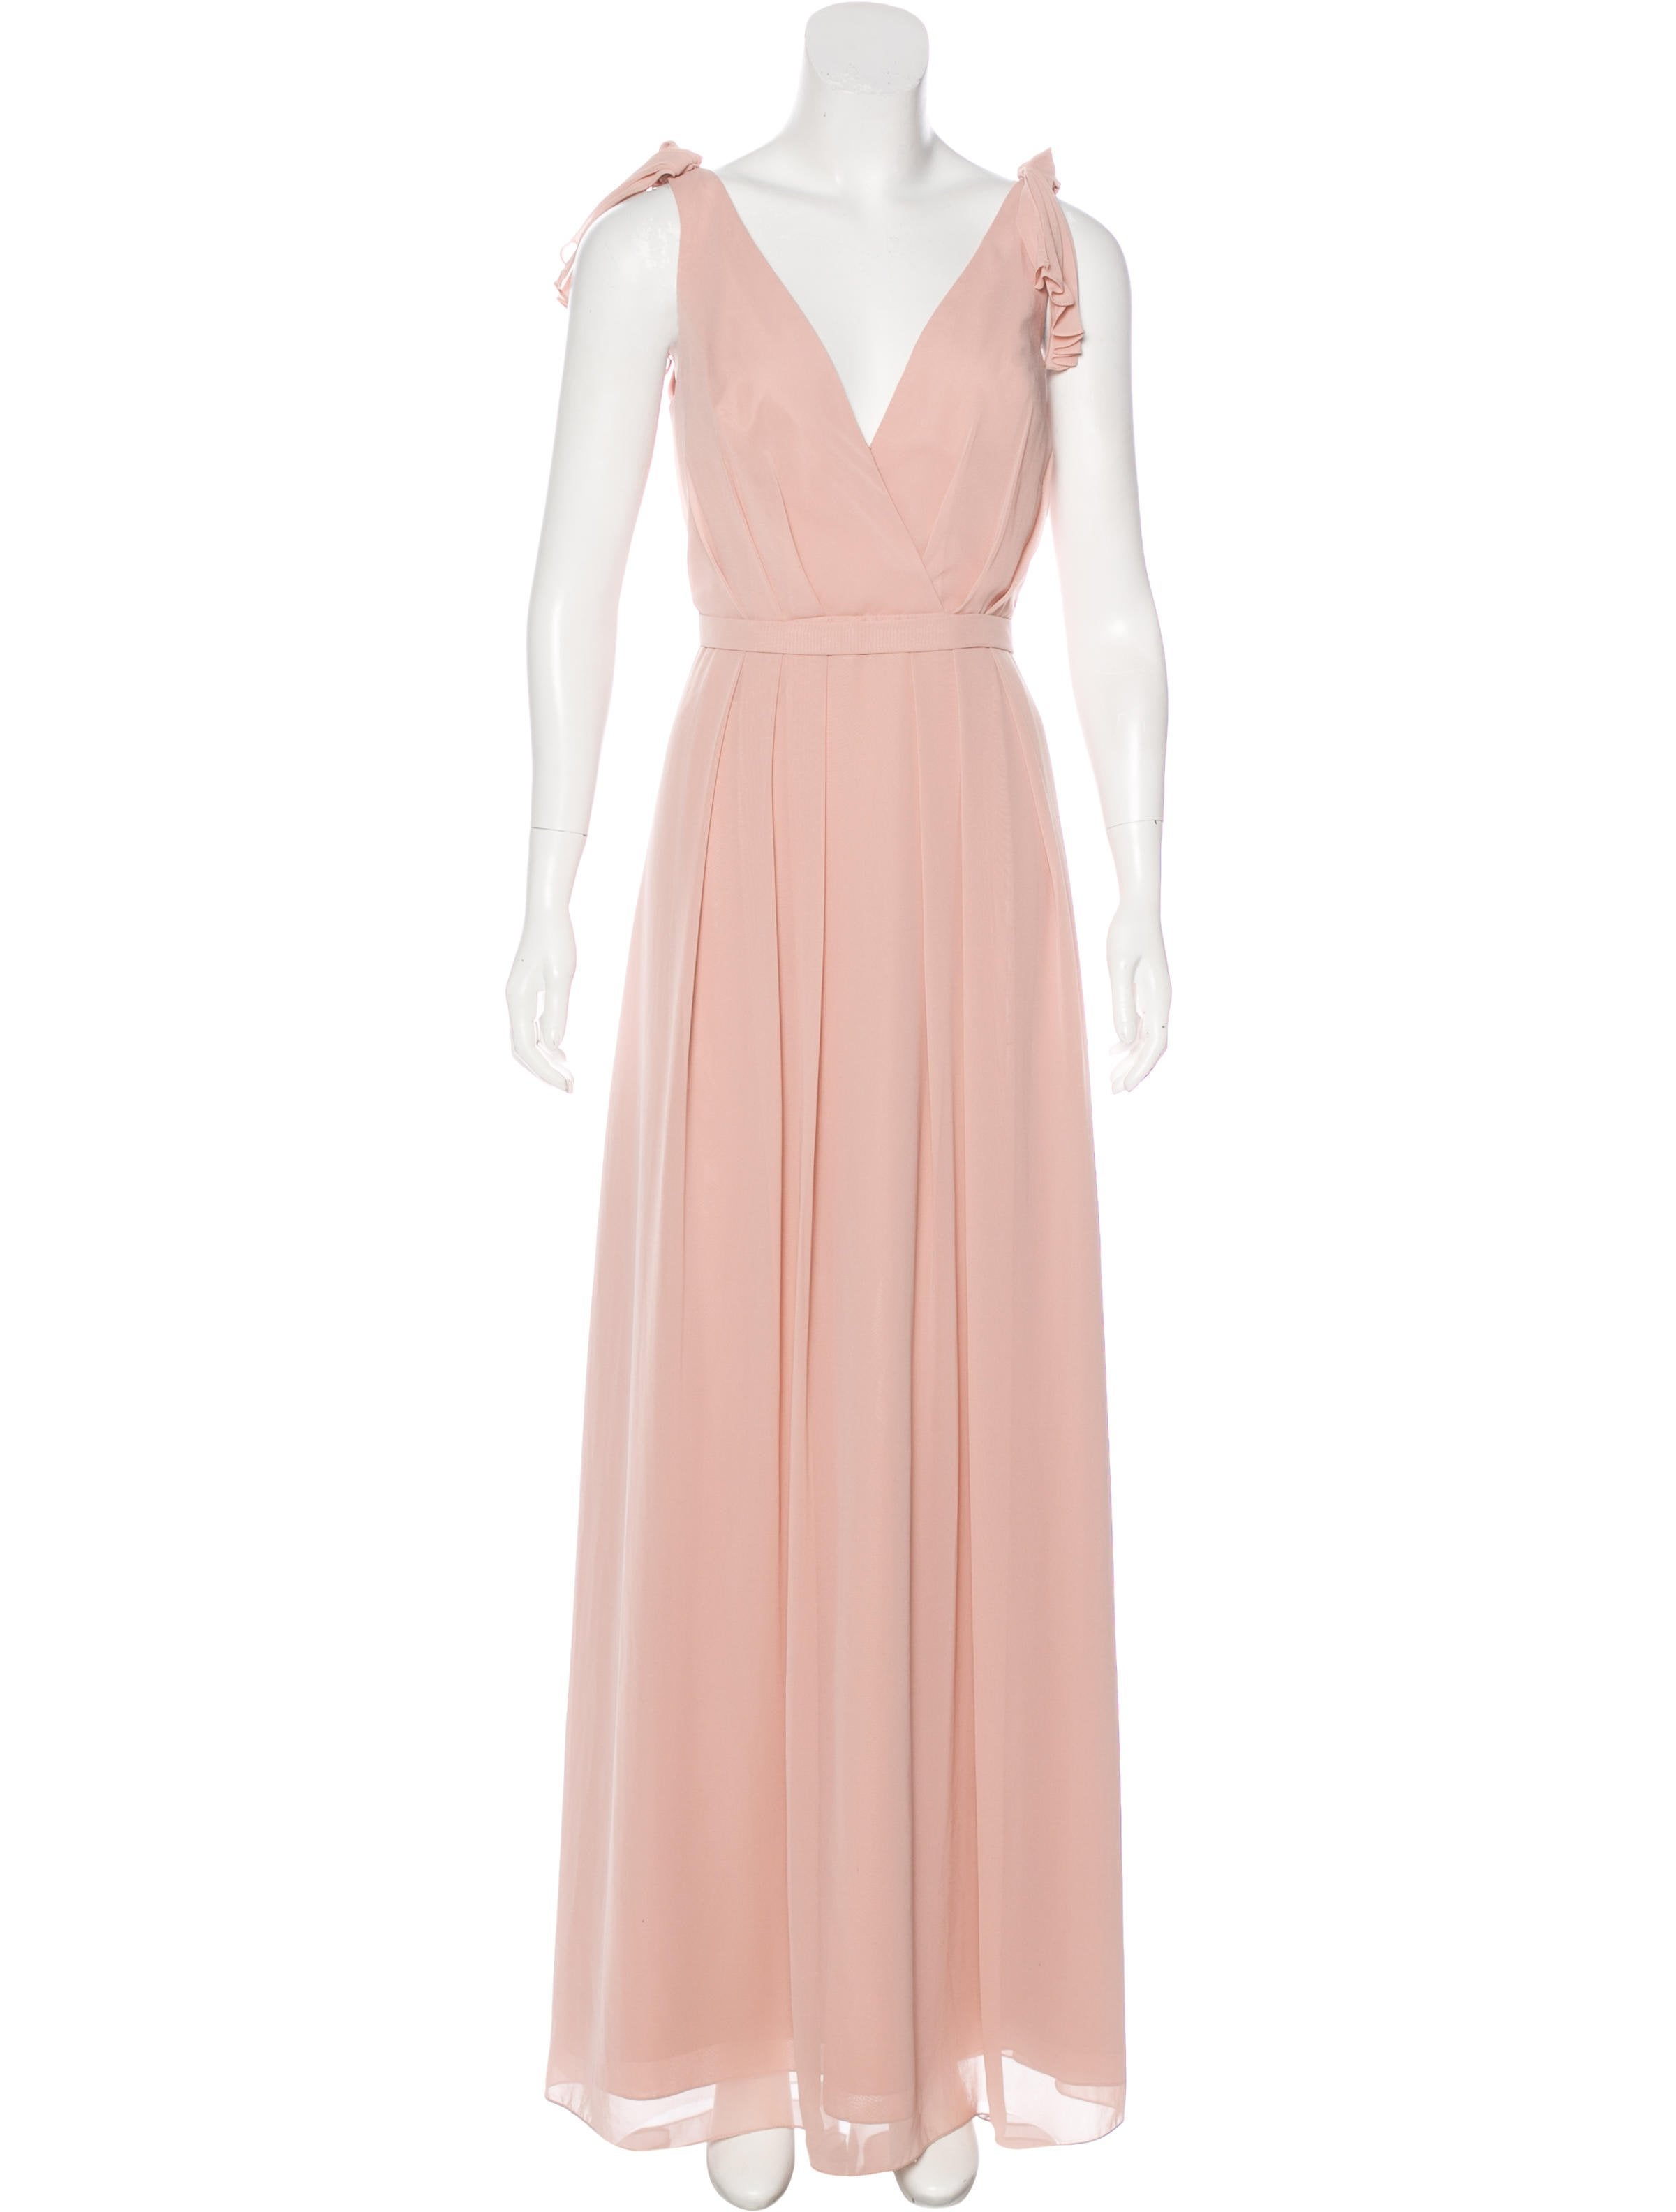 Monique Lhuillier Bridesmaids Sleeveless Evening Gown - Clothing ...